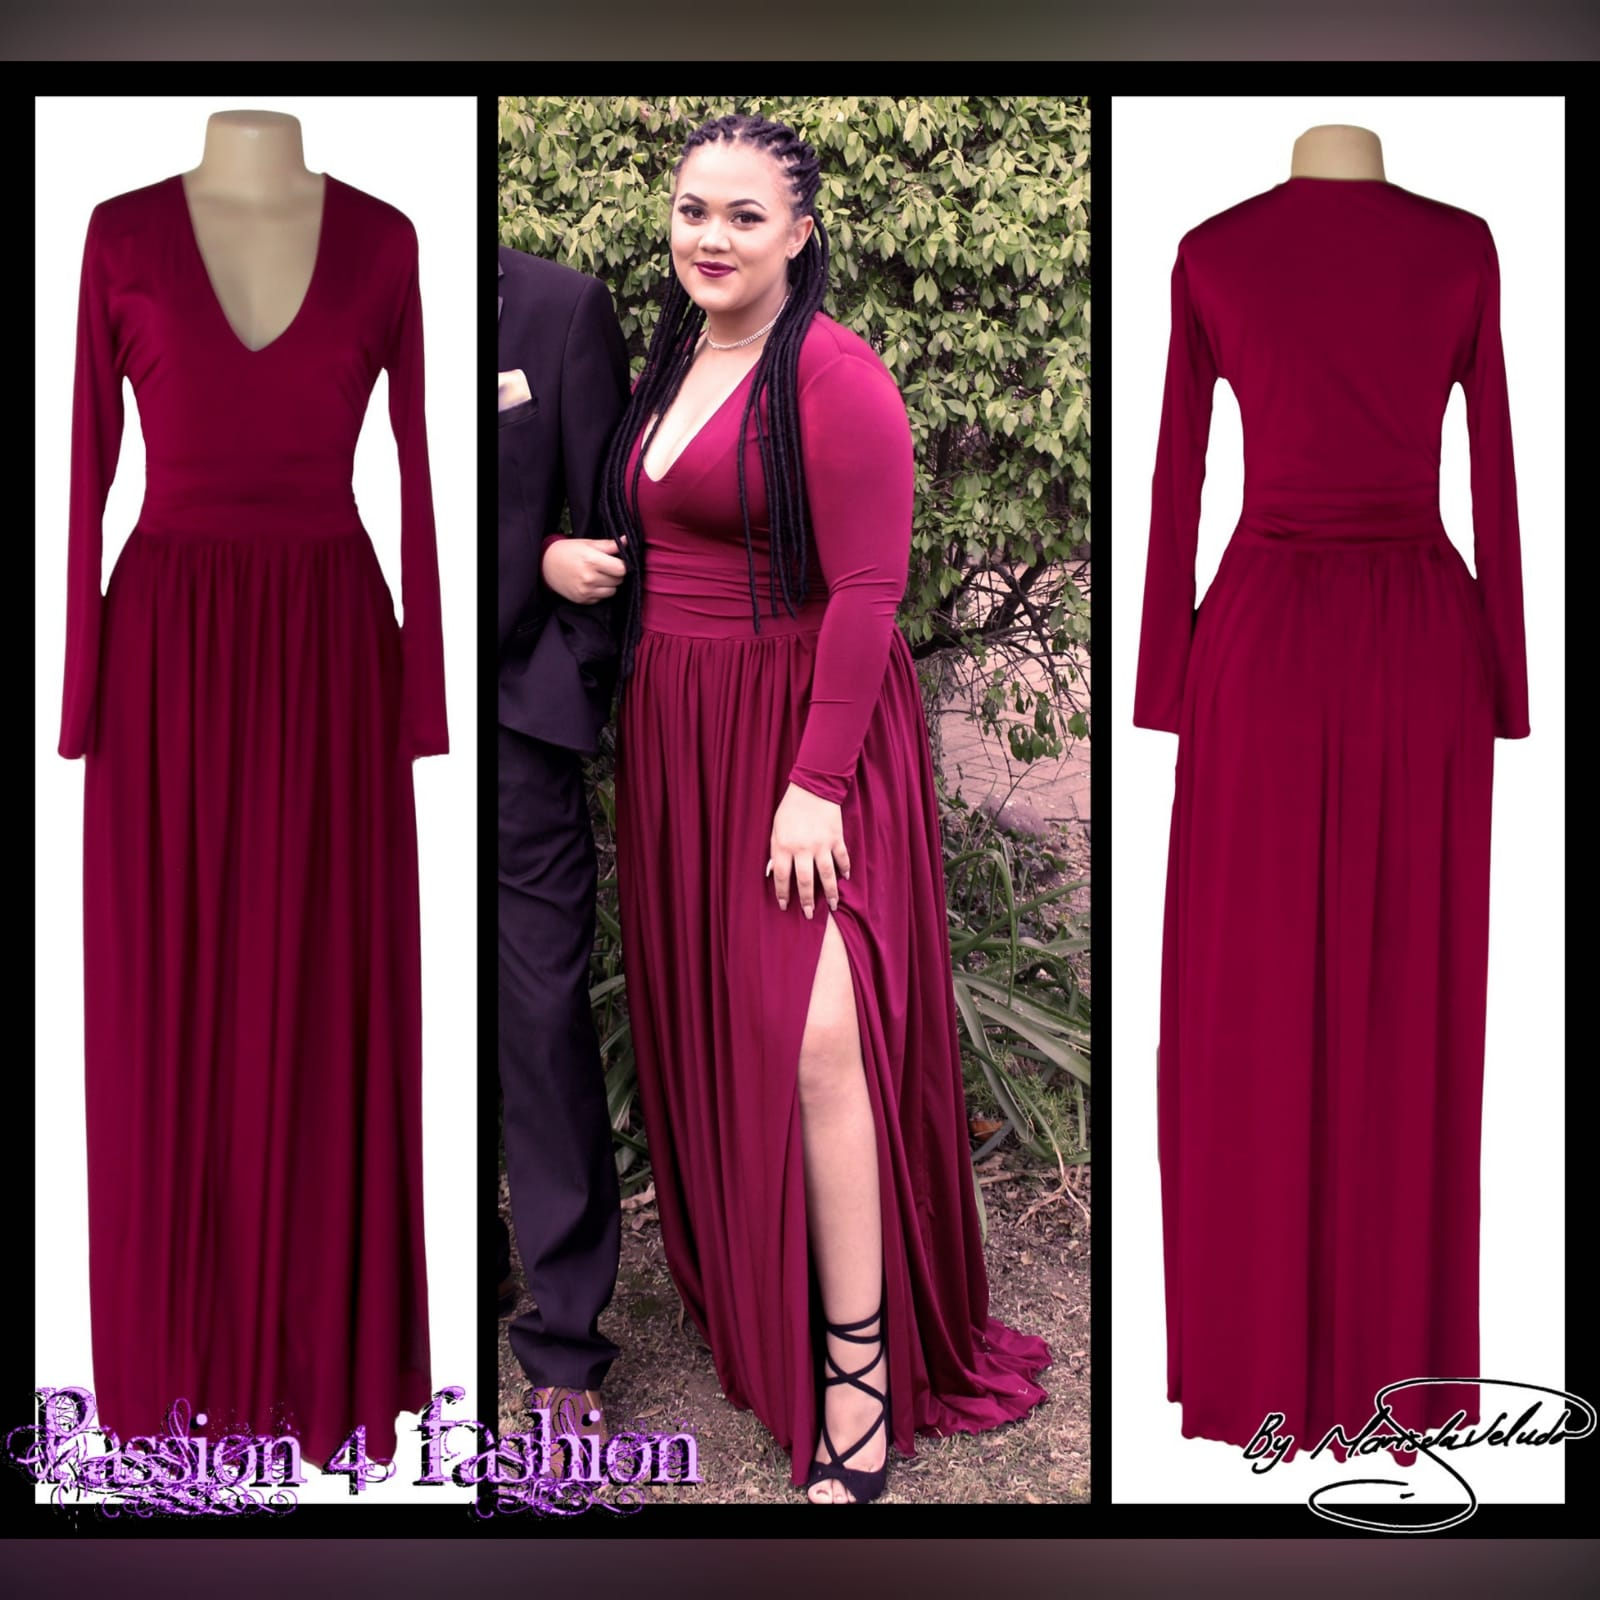 Burgundy simple long prom dress 4 burgundy simple long prom dress with a v neckline, long fitted sleeves, flowy gathered bottom with a slit and a little train.